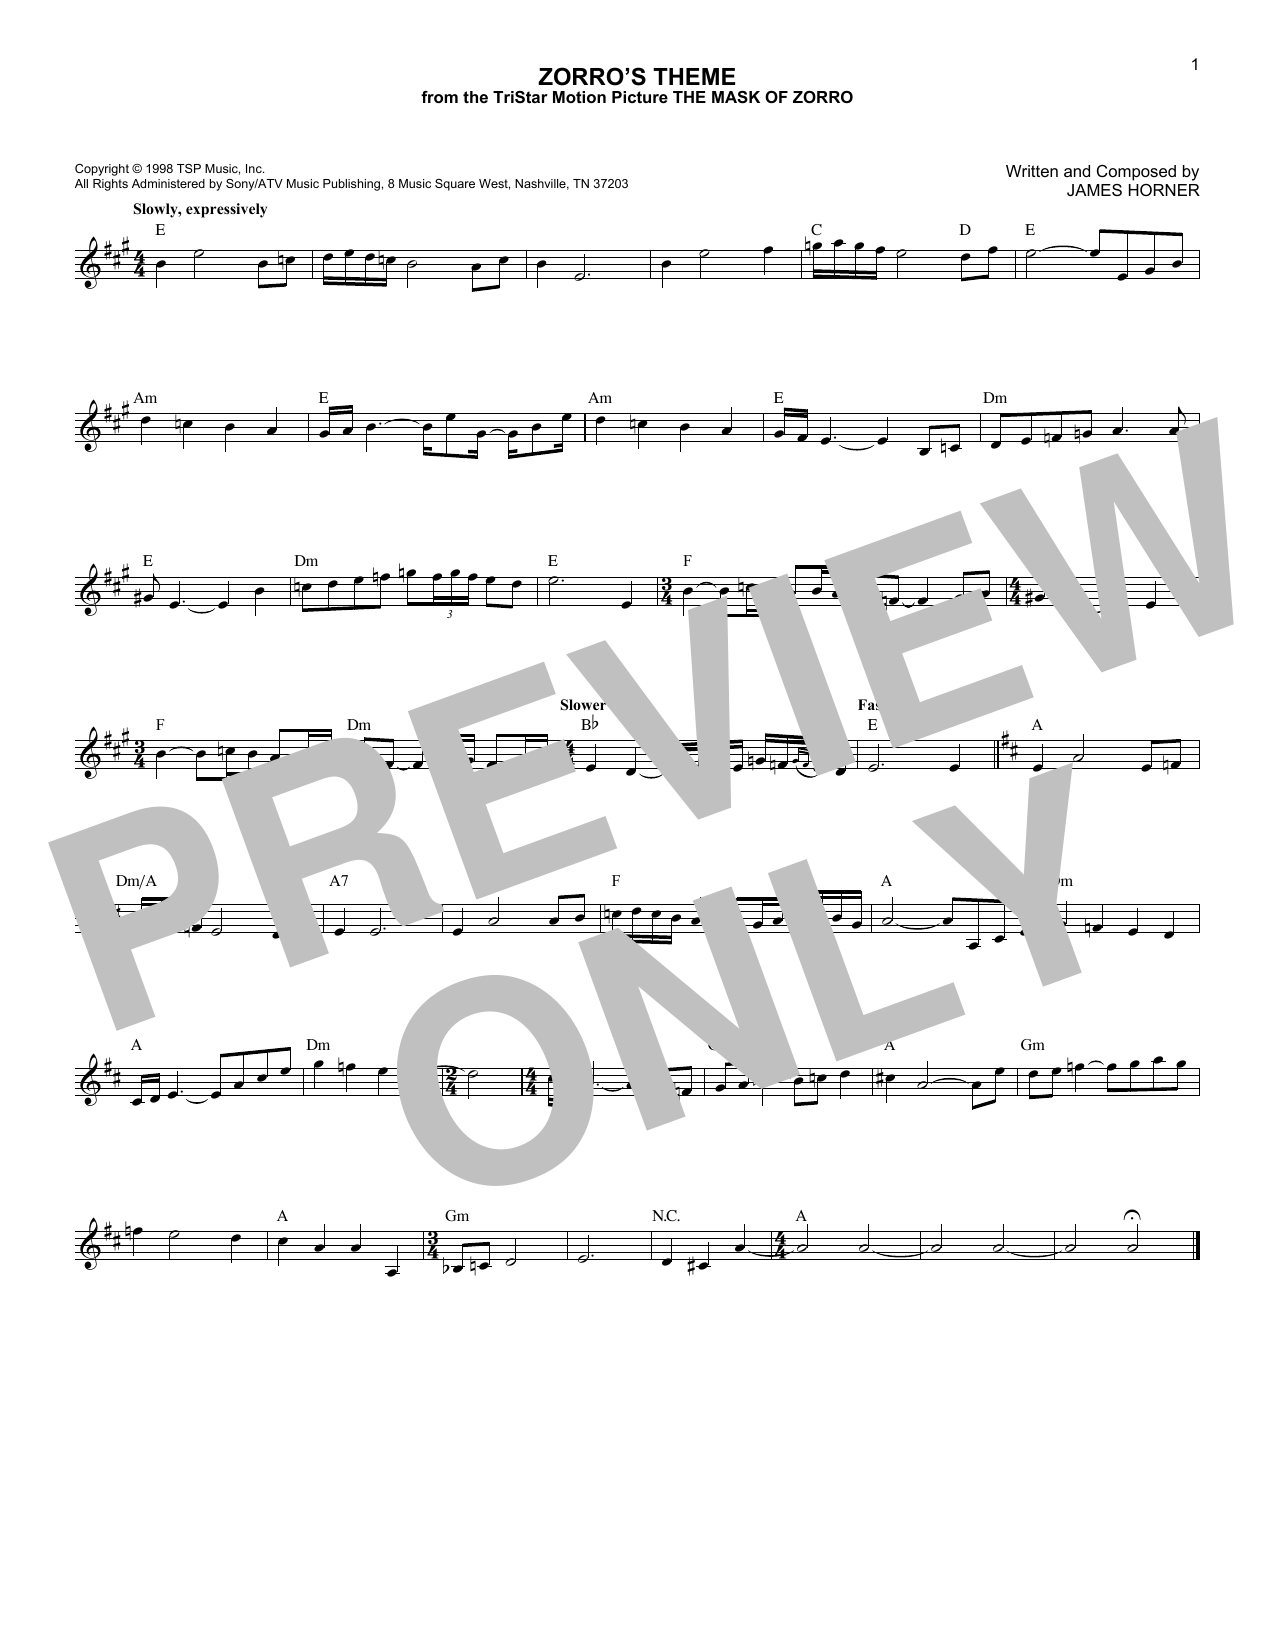 James Horner Zorro's Theme (from The Mask Of Zorro) sheet music notes and chords. Download Printable PDF.